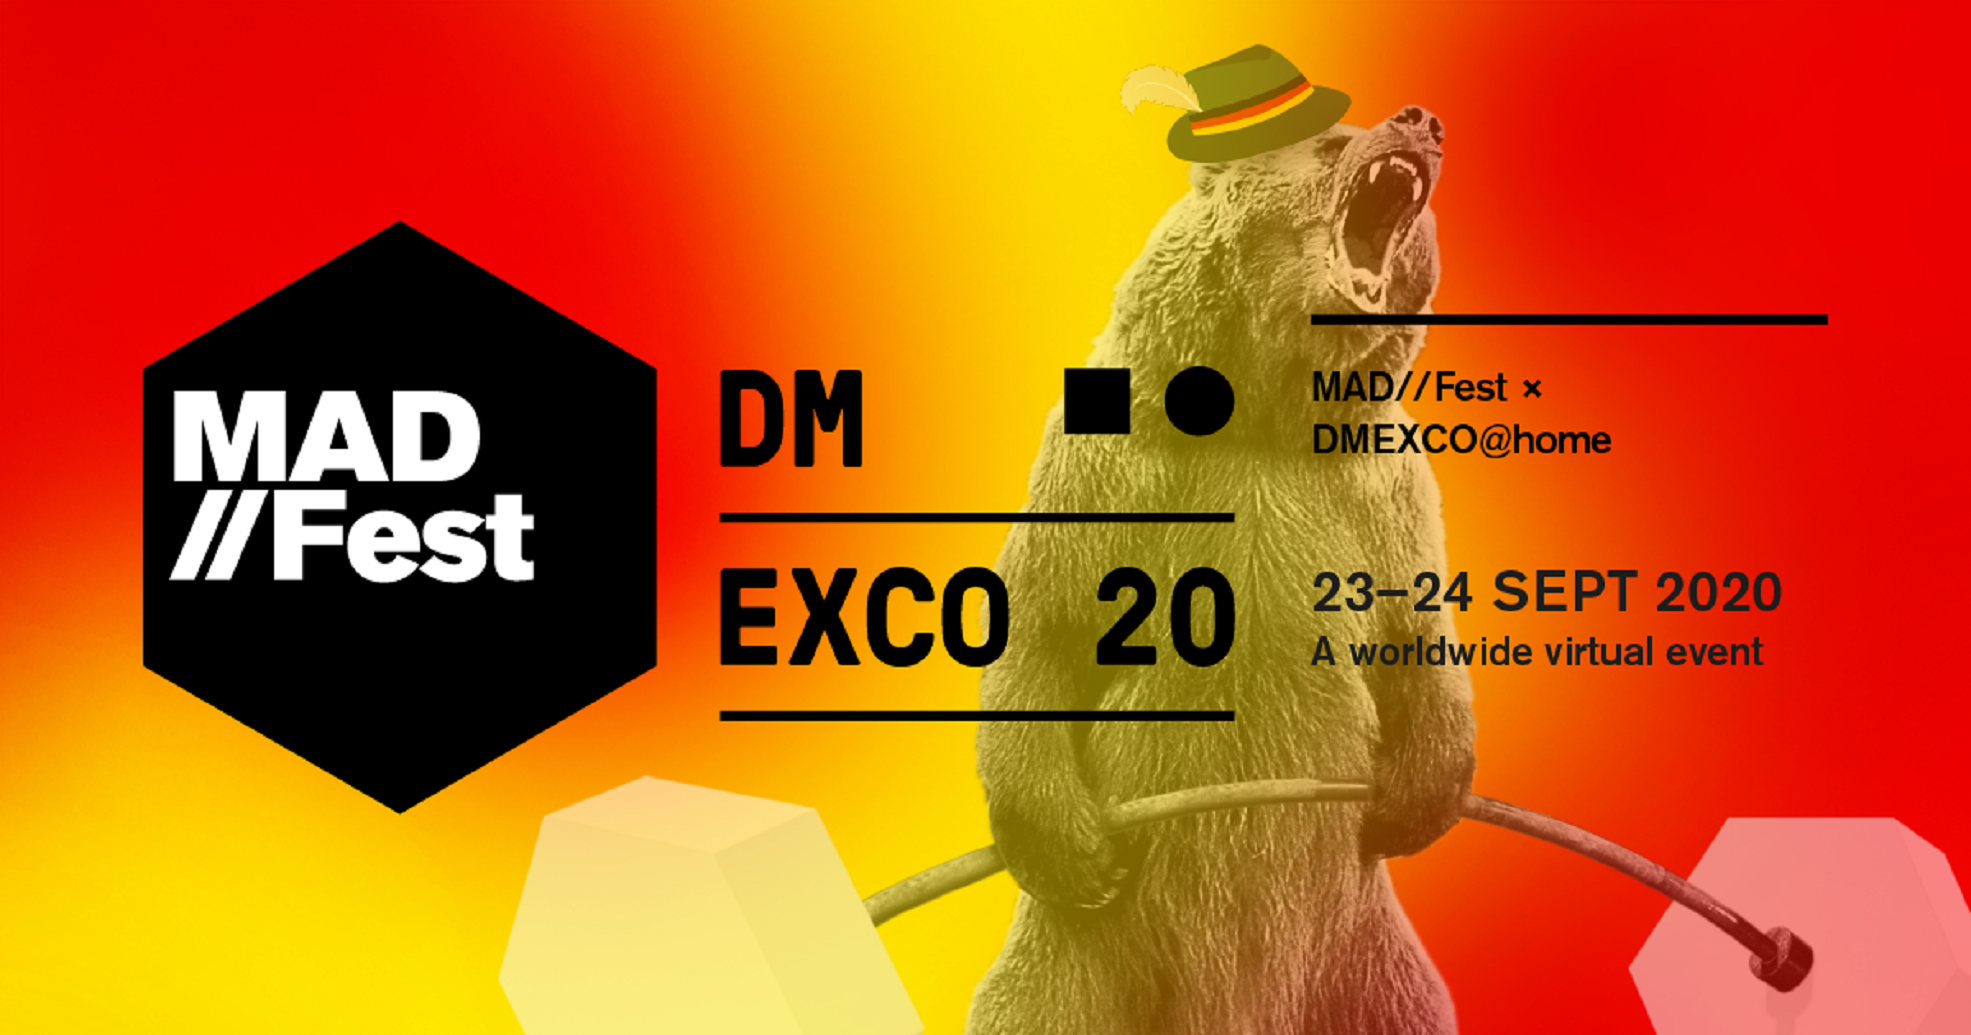 MAD//Fest will be enriching DMEXCO @home. In an interview, Dan Brain, co-founder of the British festival, gives us a taste of what we can expect.